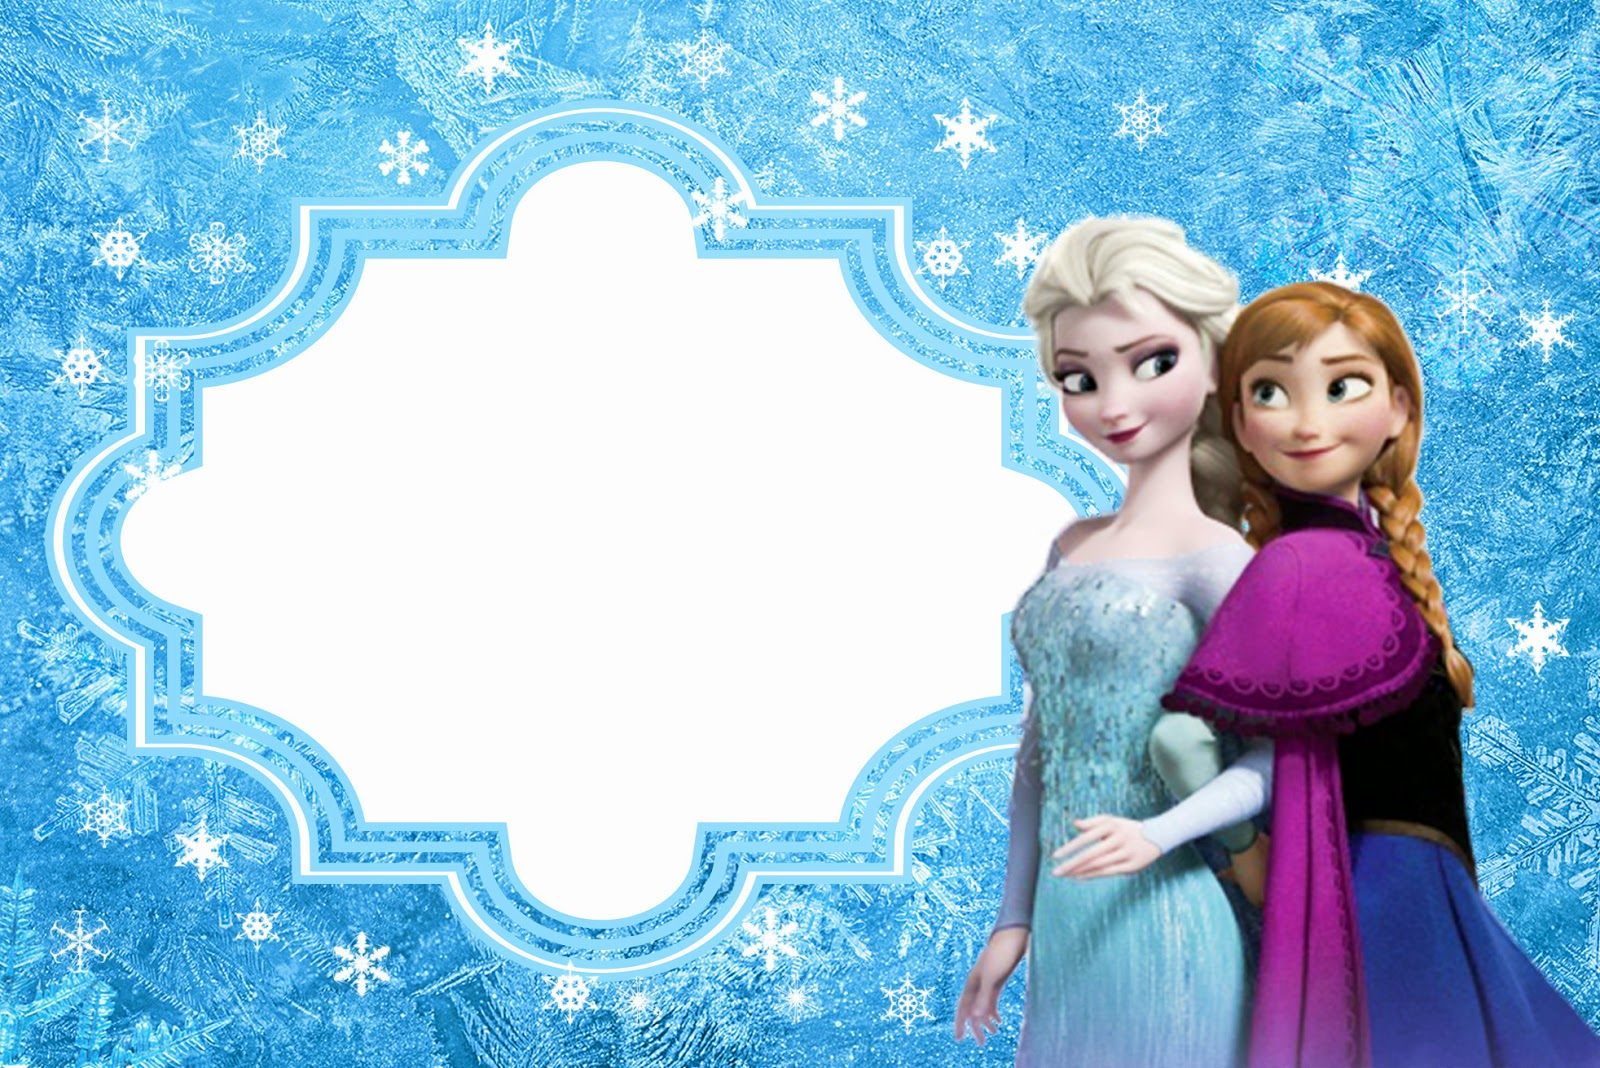 Frozen: Free Printable Cards Or Party Invitations. | Oh My Fiesta - Free Printable Frozen Birthday Invitations